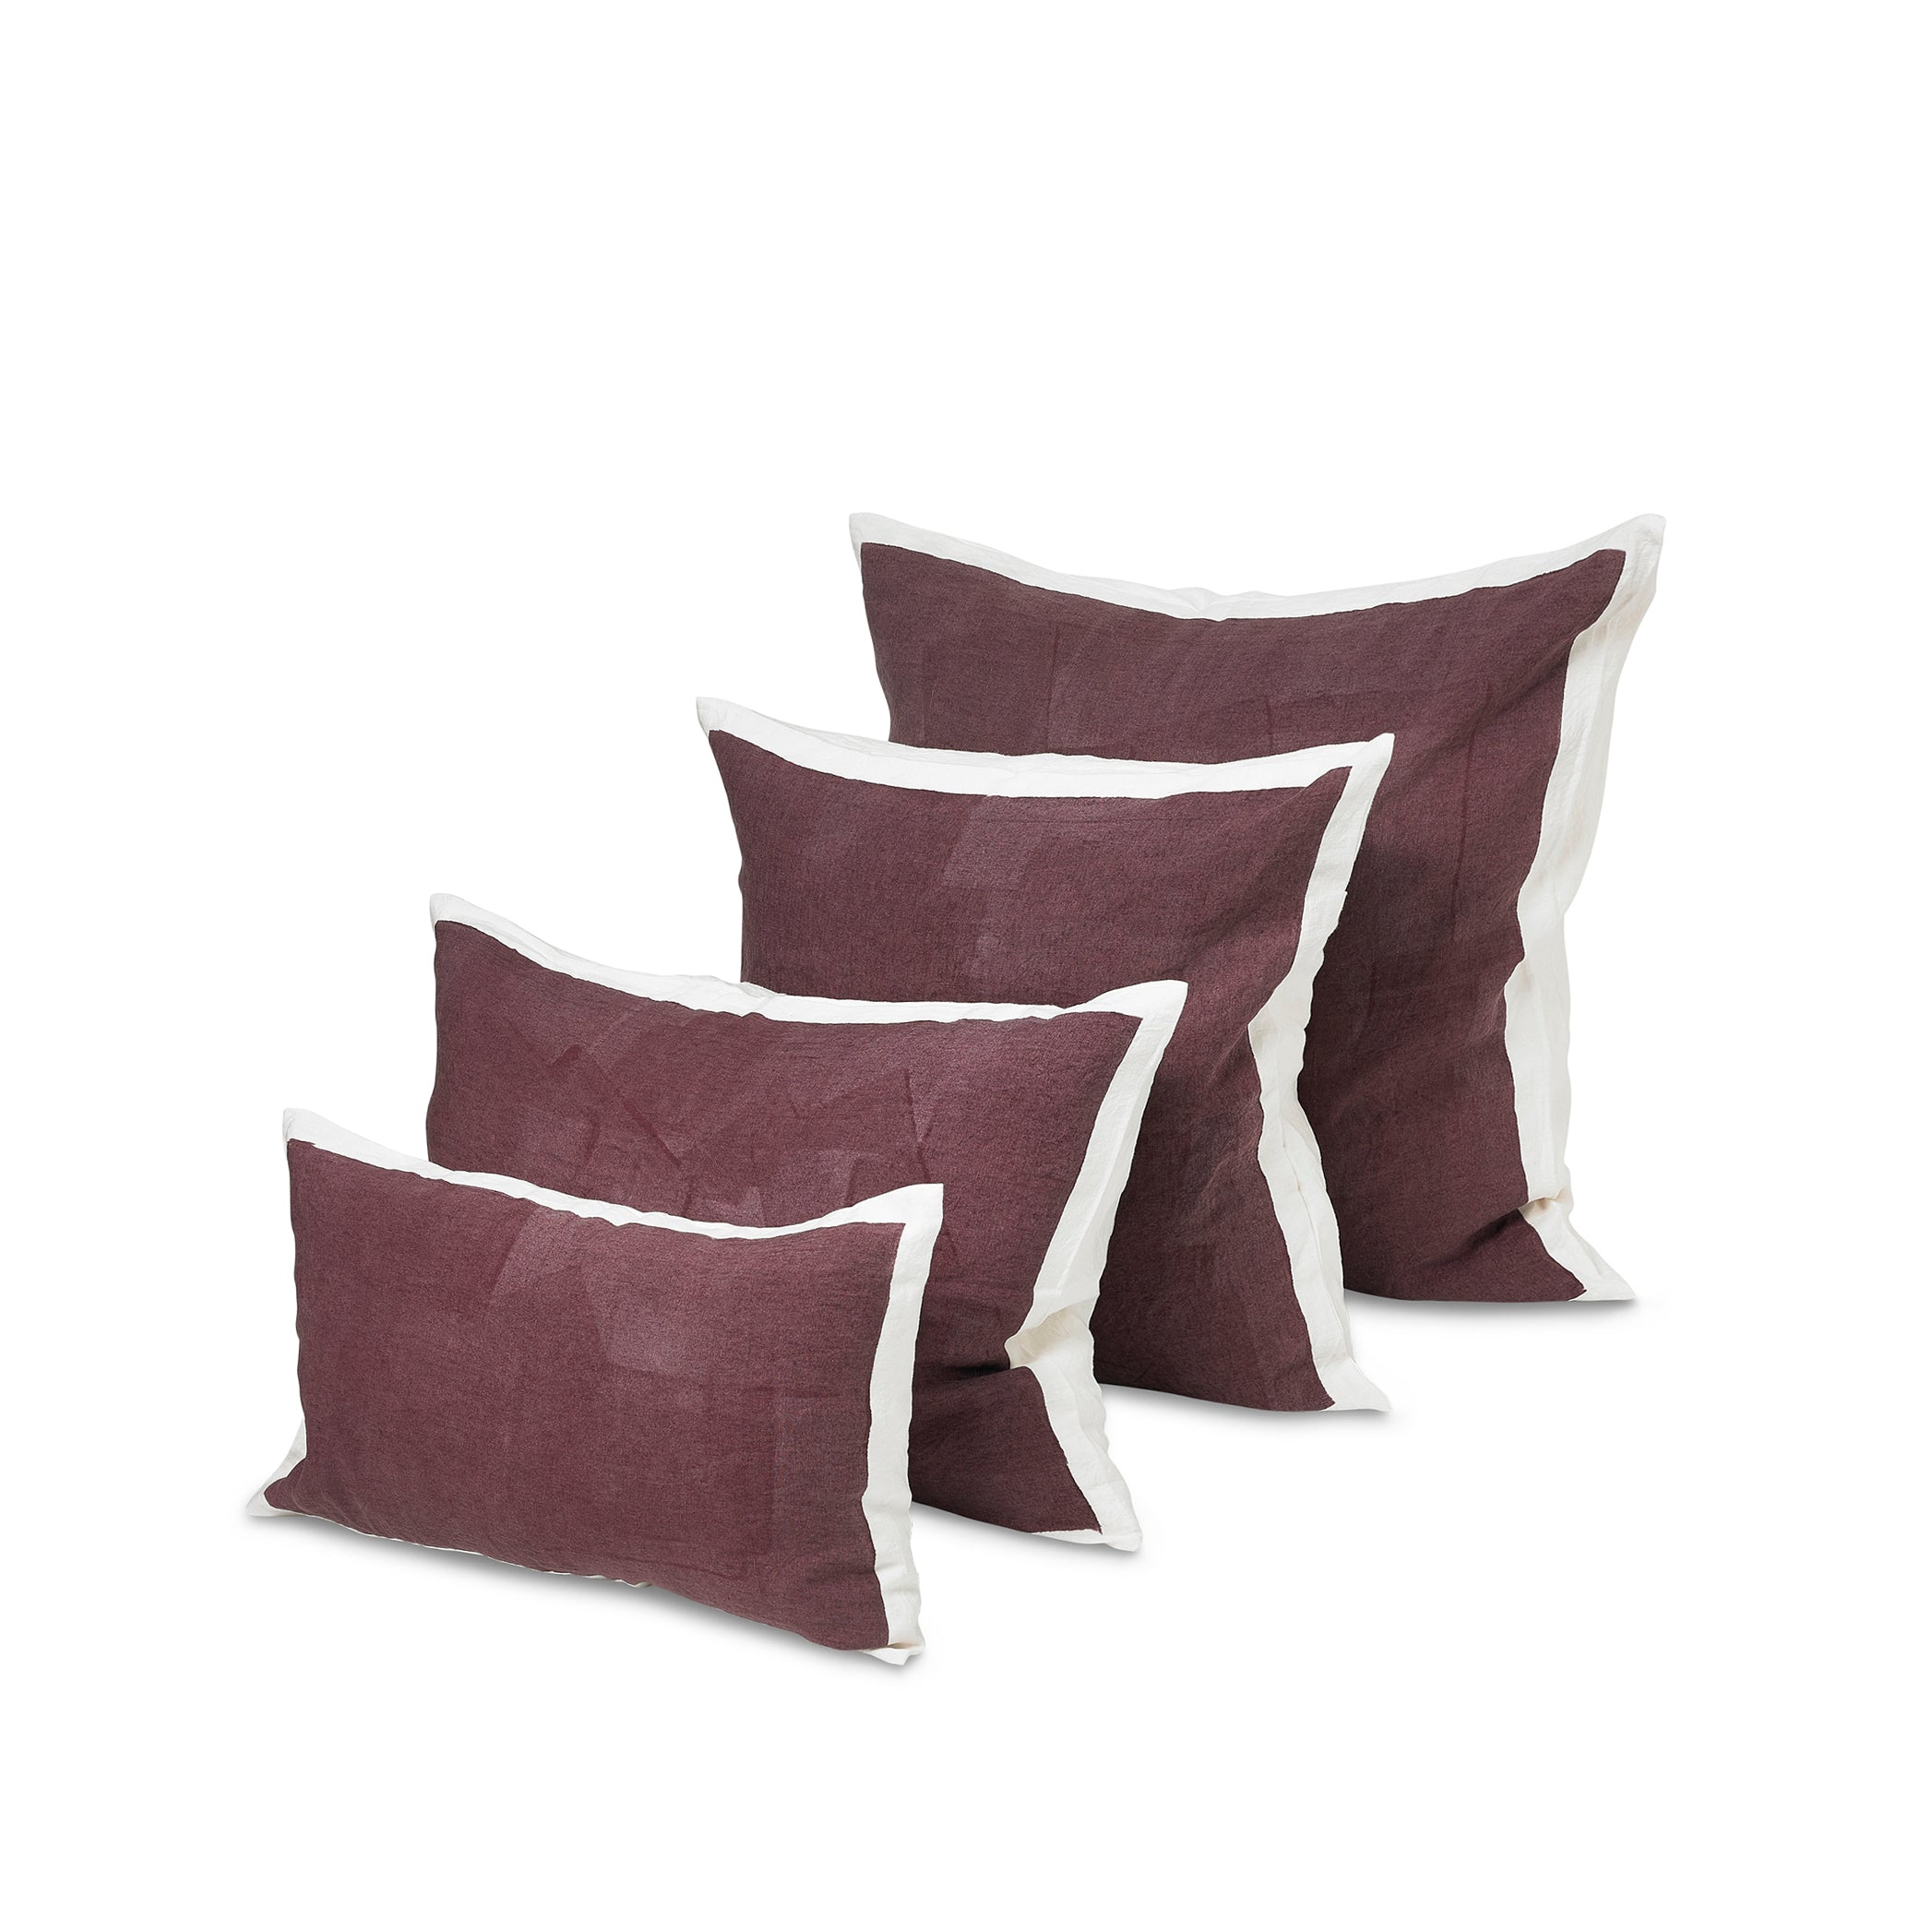 Hand Painted Linen Cushion in Grape, 50cm x 50cm